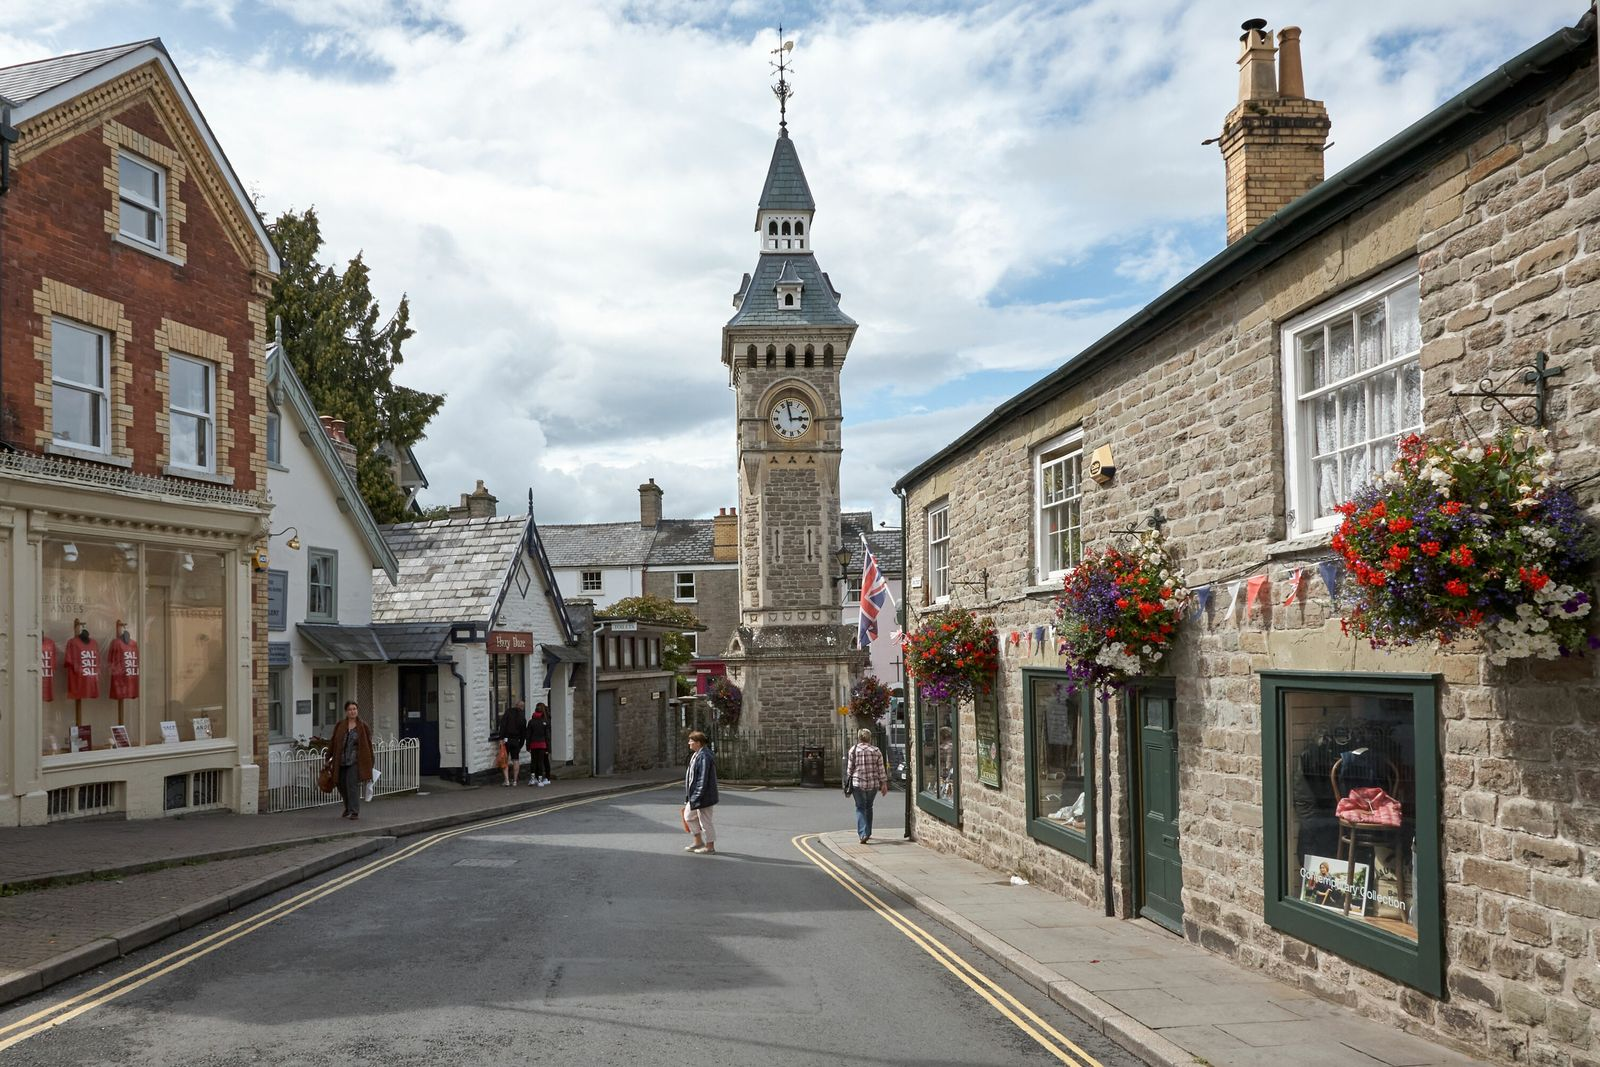 The market town of Hay-on-Wye in the Welsh County of Powys, near the English border, is famous for ...